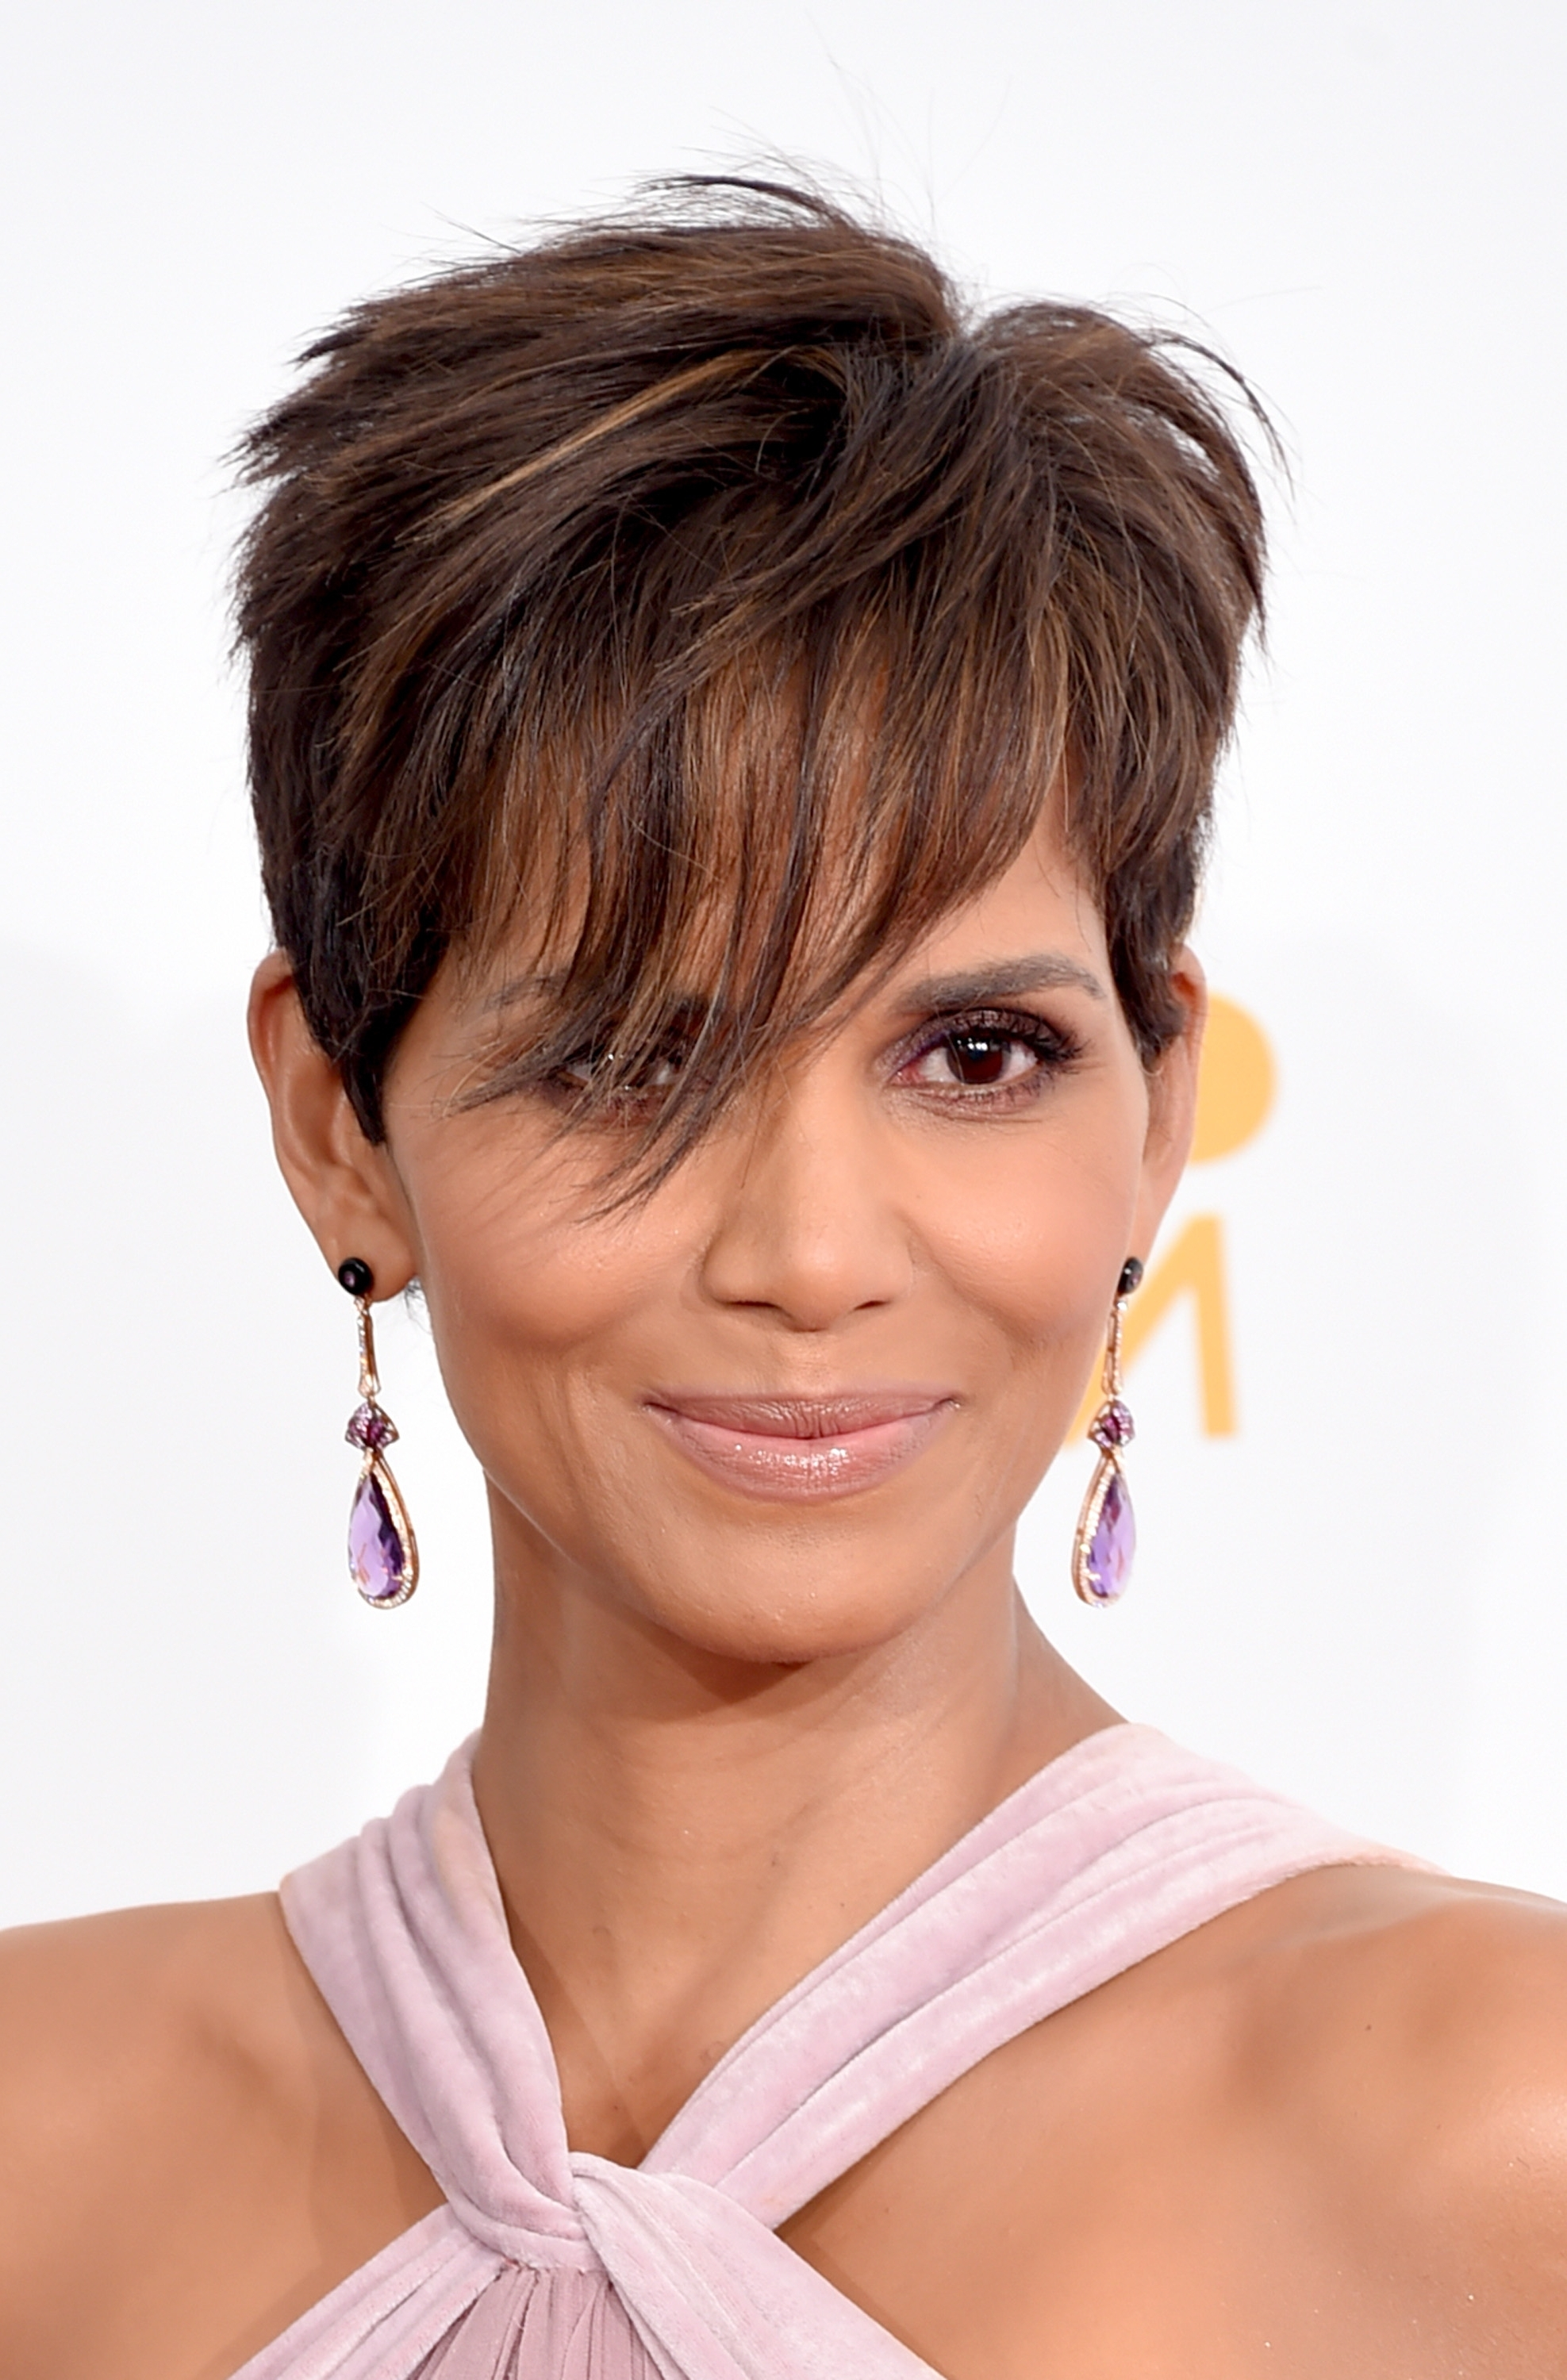 40 Best Short Pixie Cut Hairstyles 2018 – Cute Pixie Haircuts For Regarding Most Current Pixie Hairstyles With Long Fringe (View 11 of 15)